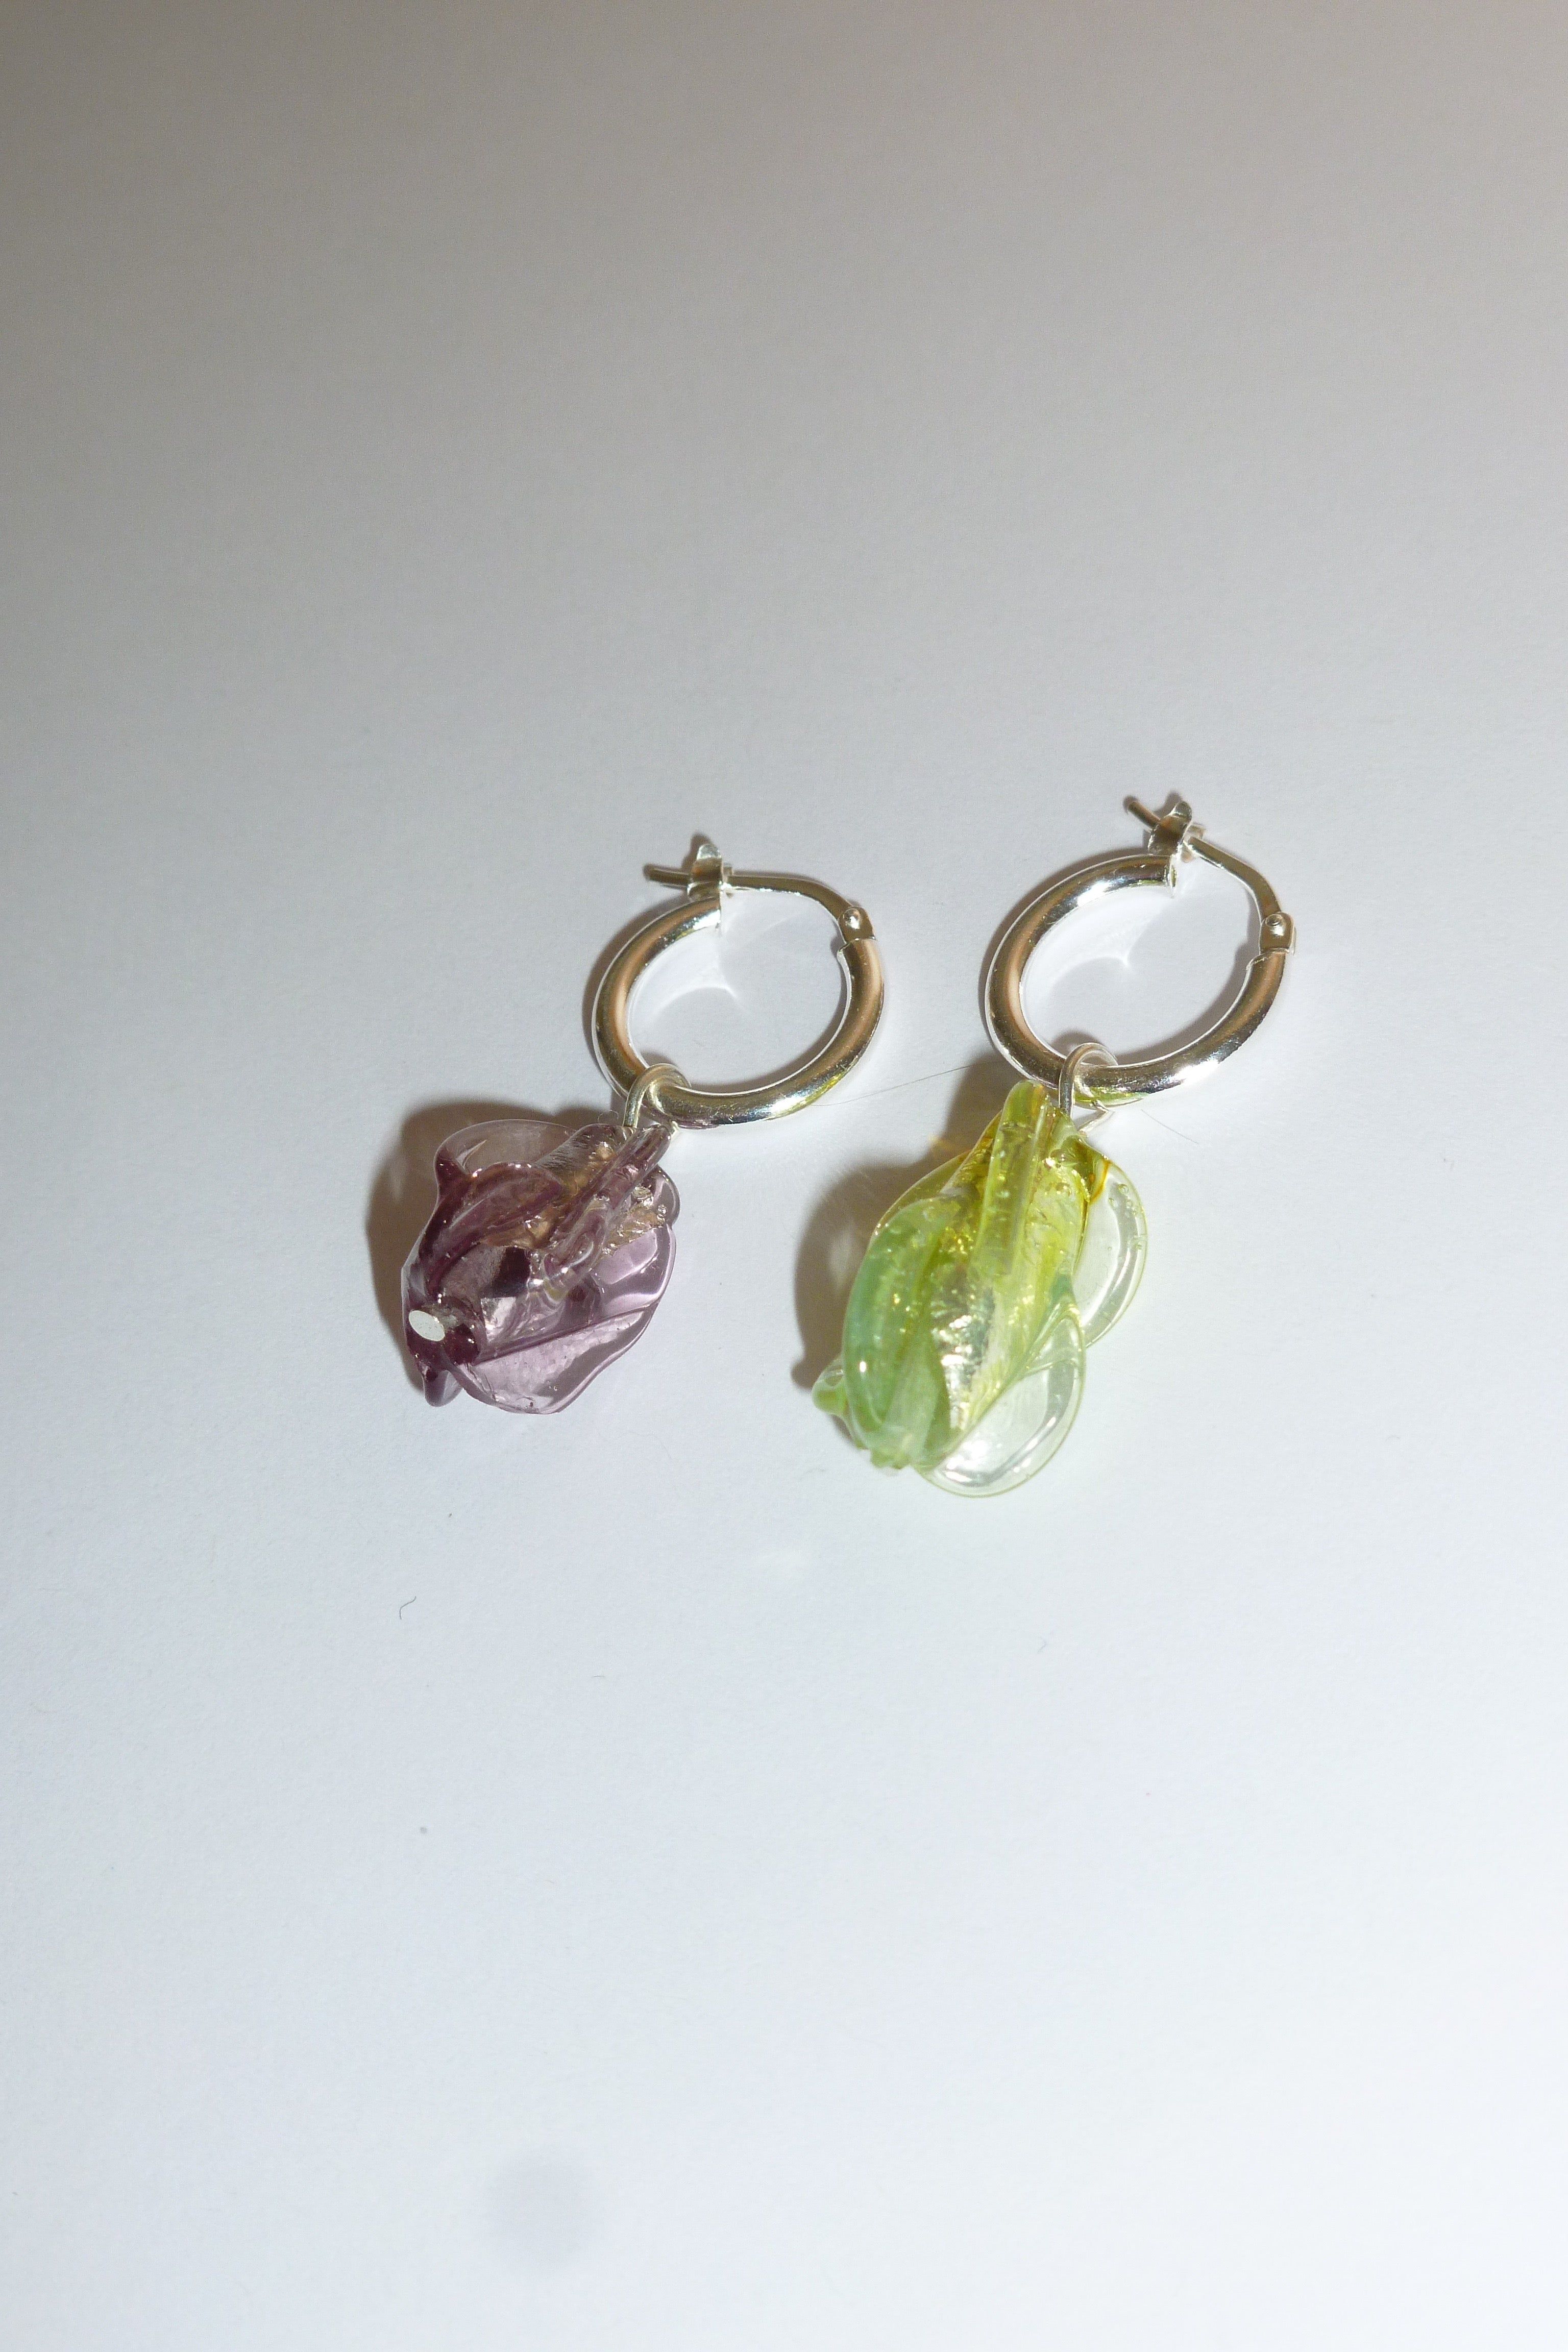 Special créoles earrings - Mismatched torpedoes - One of a kind